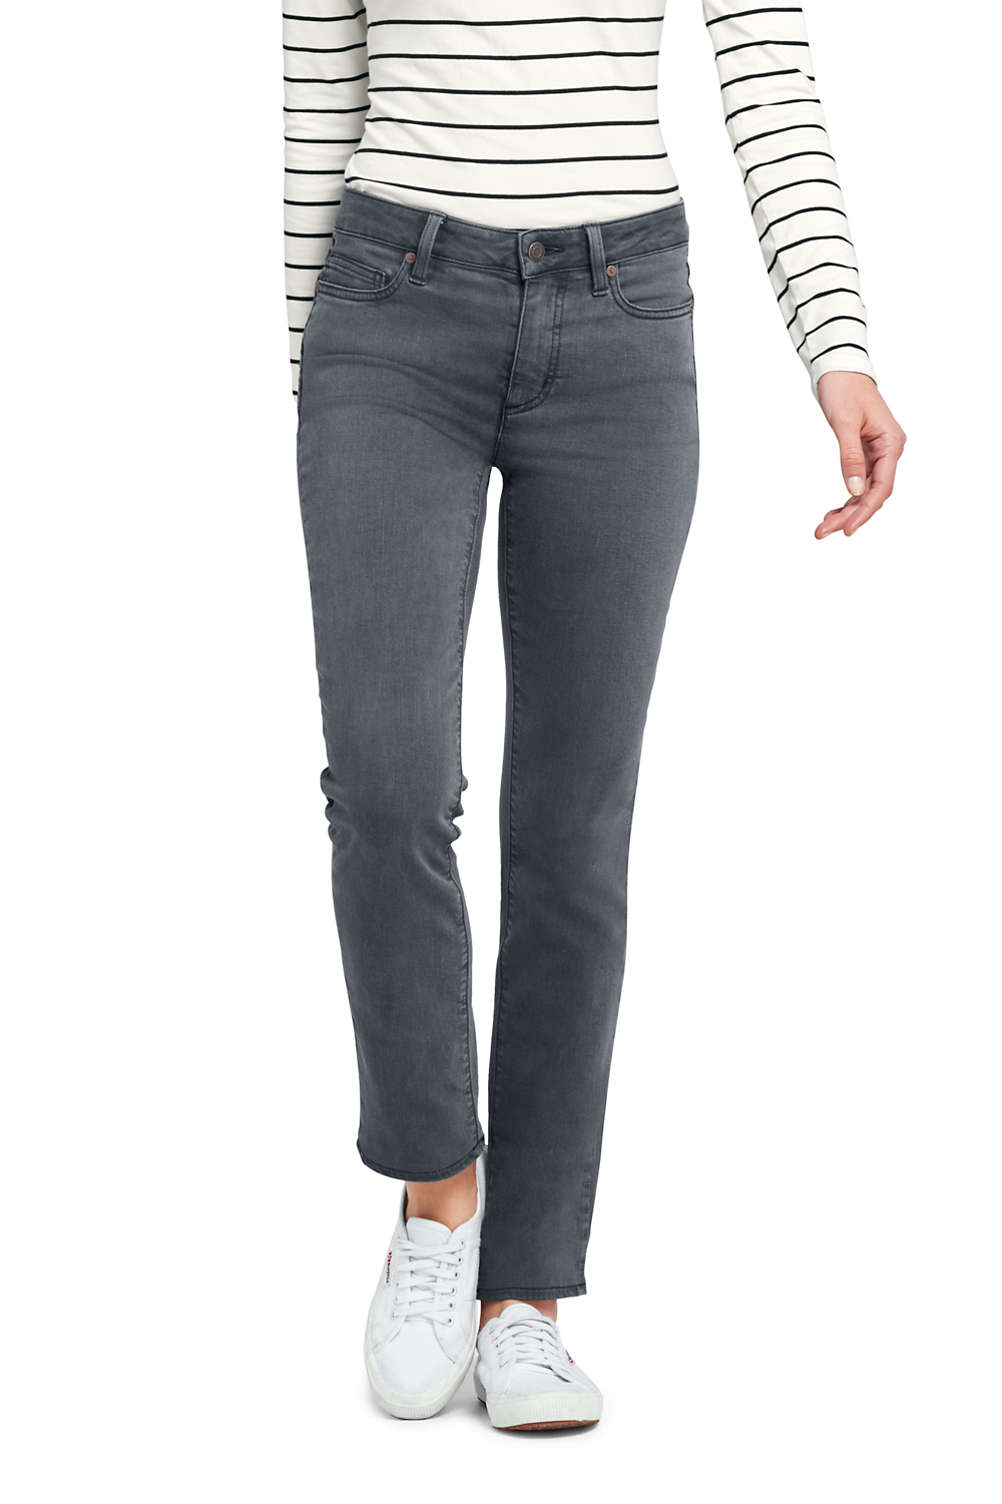 9078d20c350 Women s Mid Rise Straight Leg Colorful Jeans from Lands  End